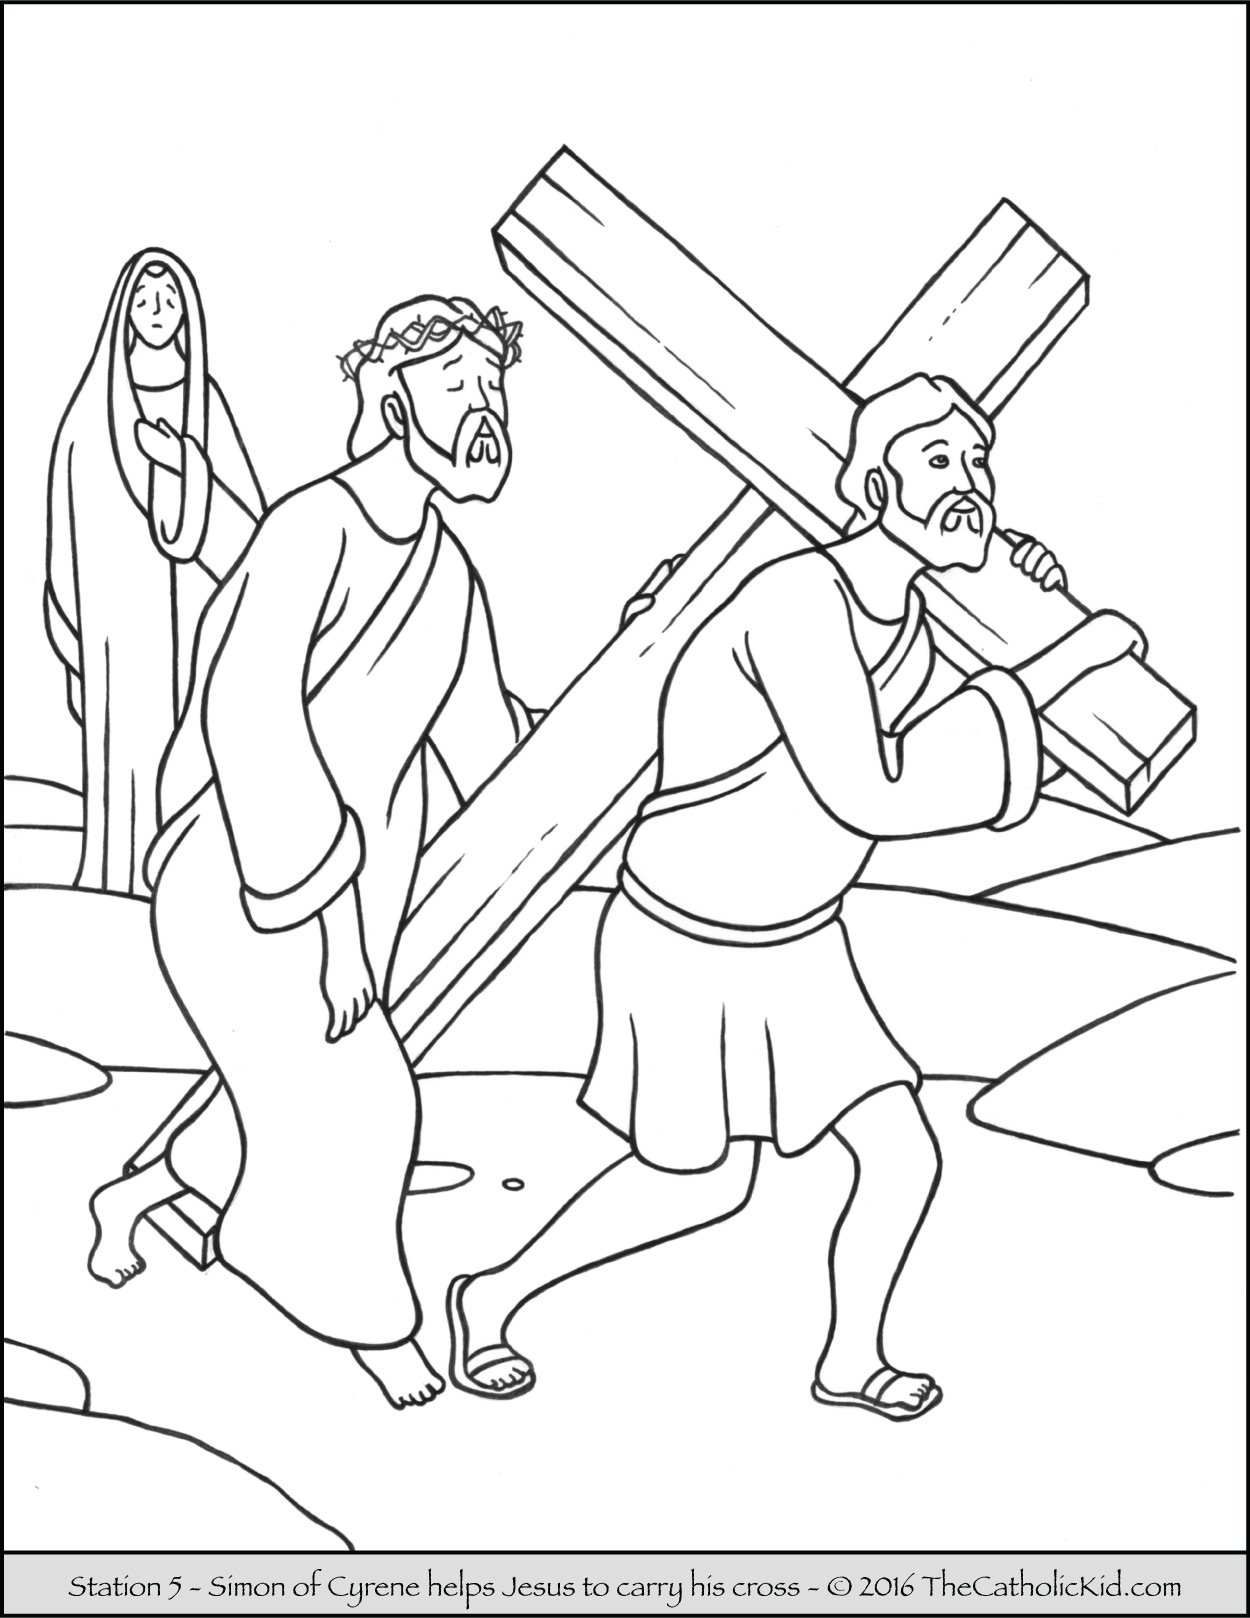 Stations Of The Cross Coloring Pages Glamorous Stations Of The Cross Coloring Pages  The Catholic Kid Review